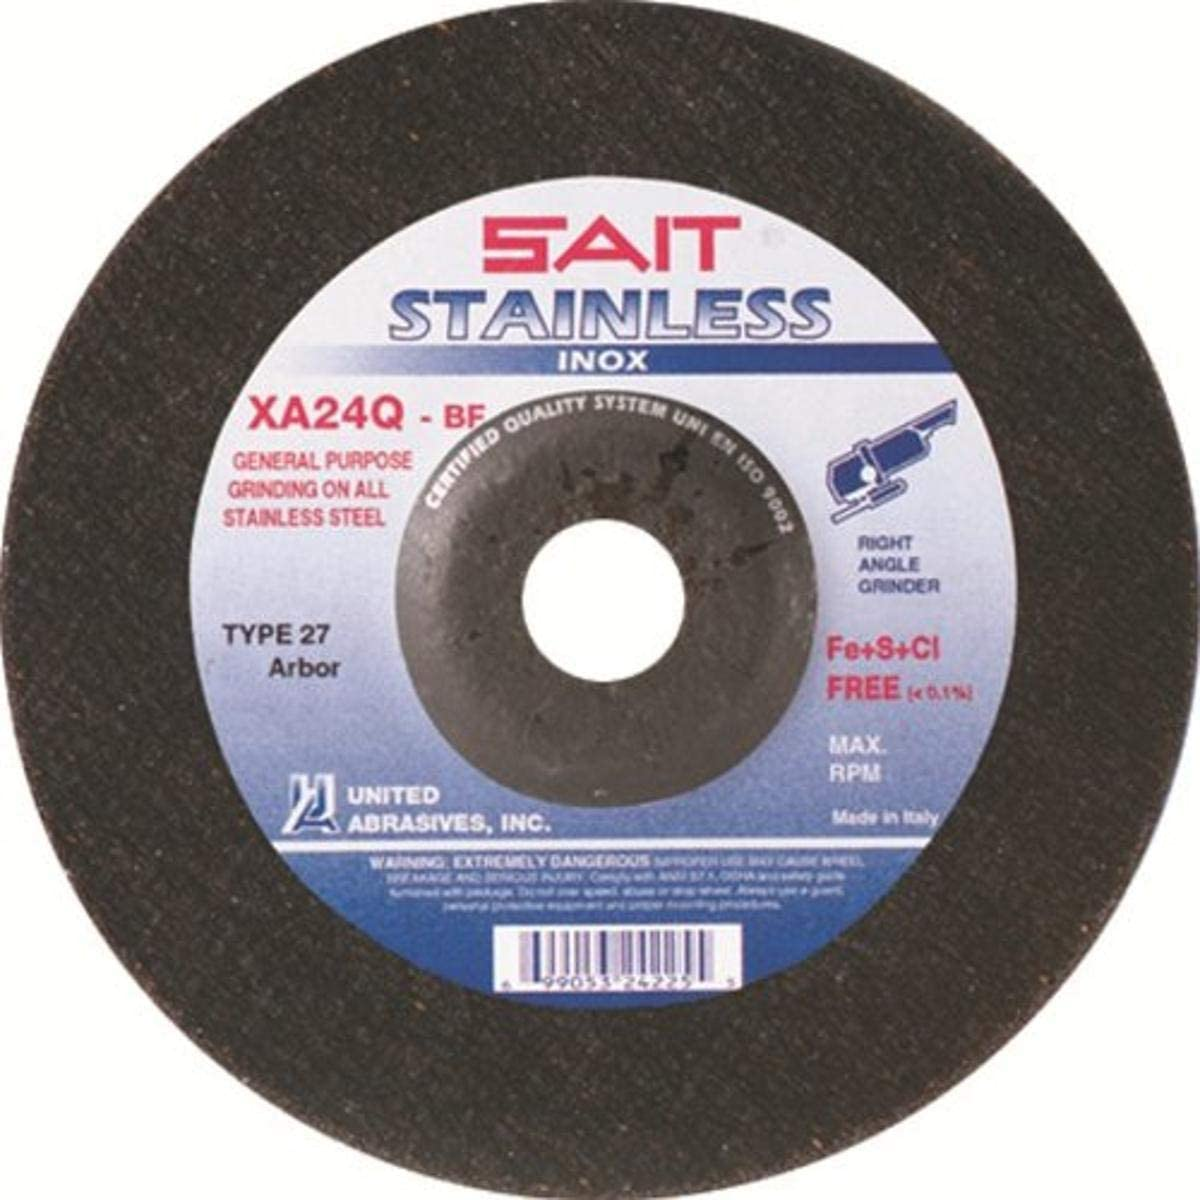 Fresno Mall United Abrasives-SAIT 24210 Type 27 lowest price 4-1 by 4-Inch 1 7 2-Inch